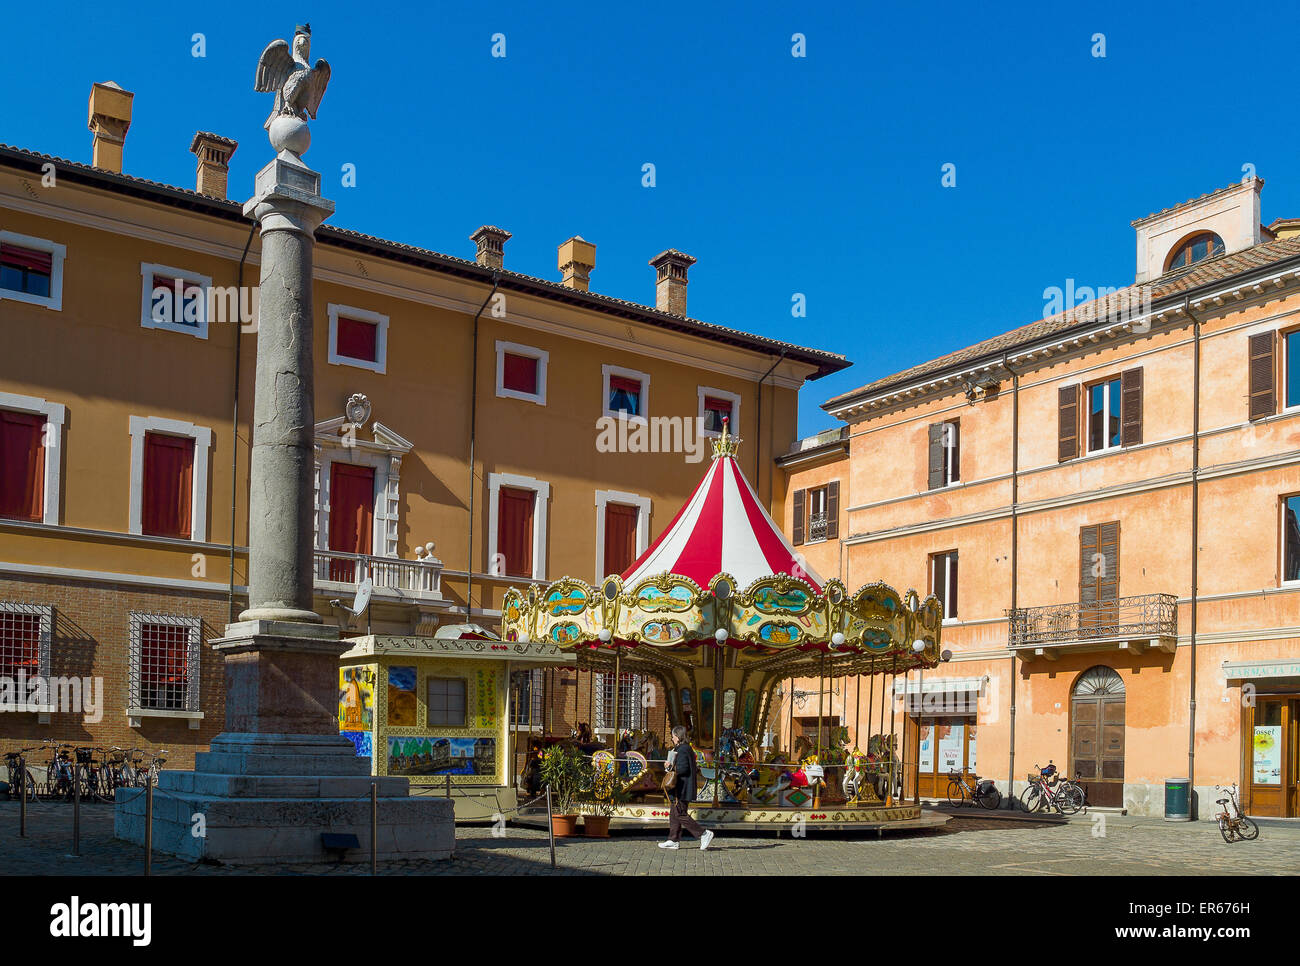 Italy, Ravenna, a carousel in Piazza XX Settembre. - Stock Image